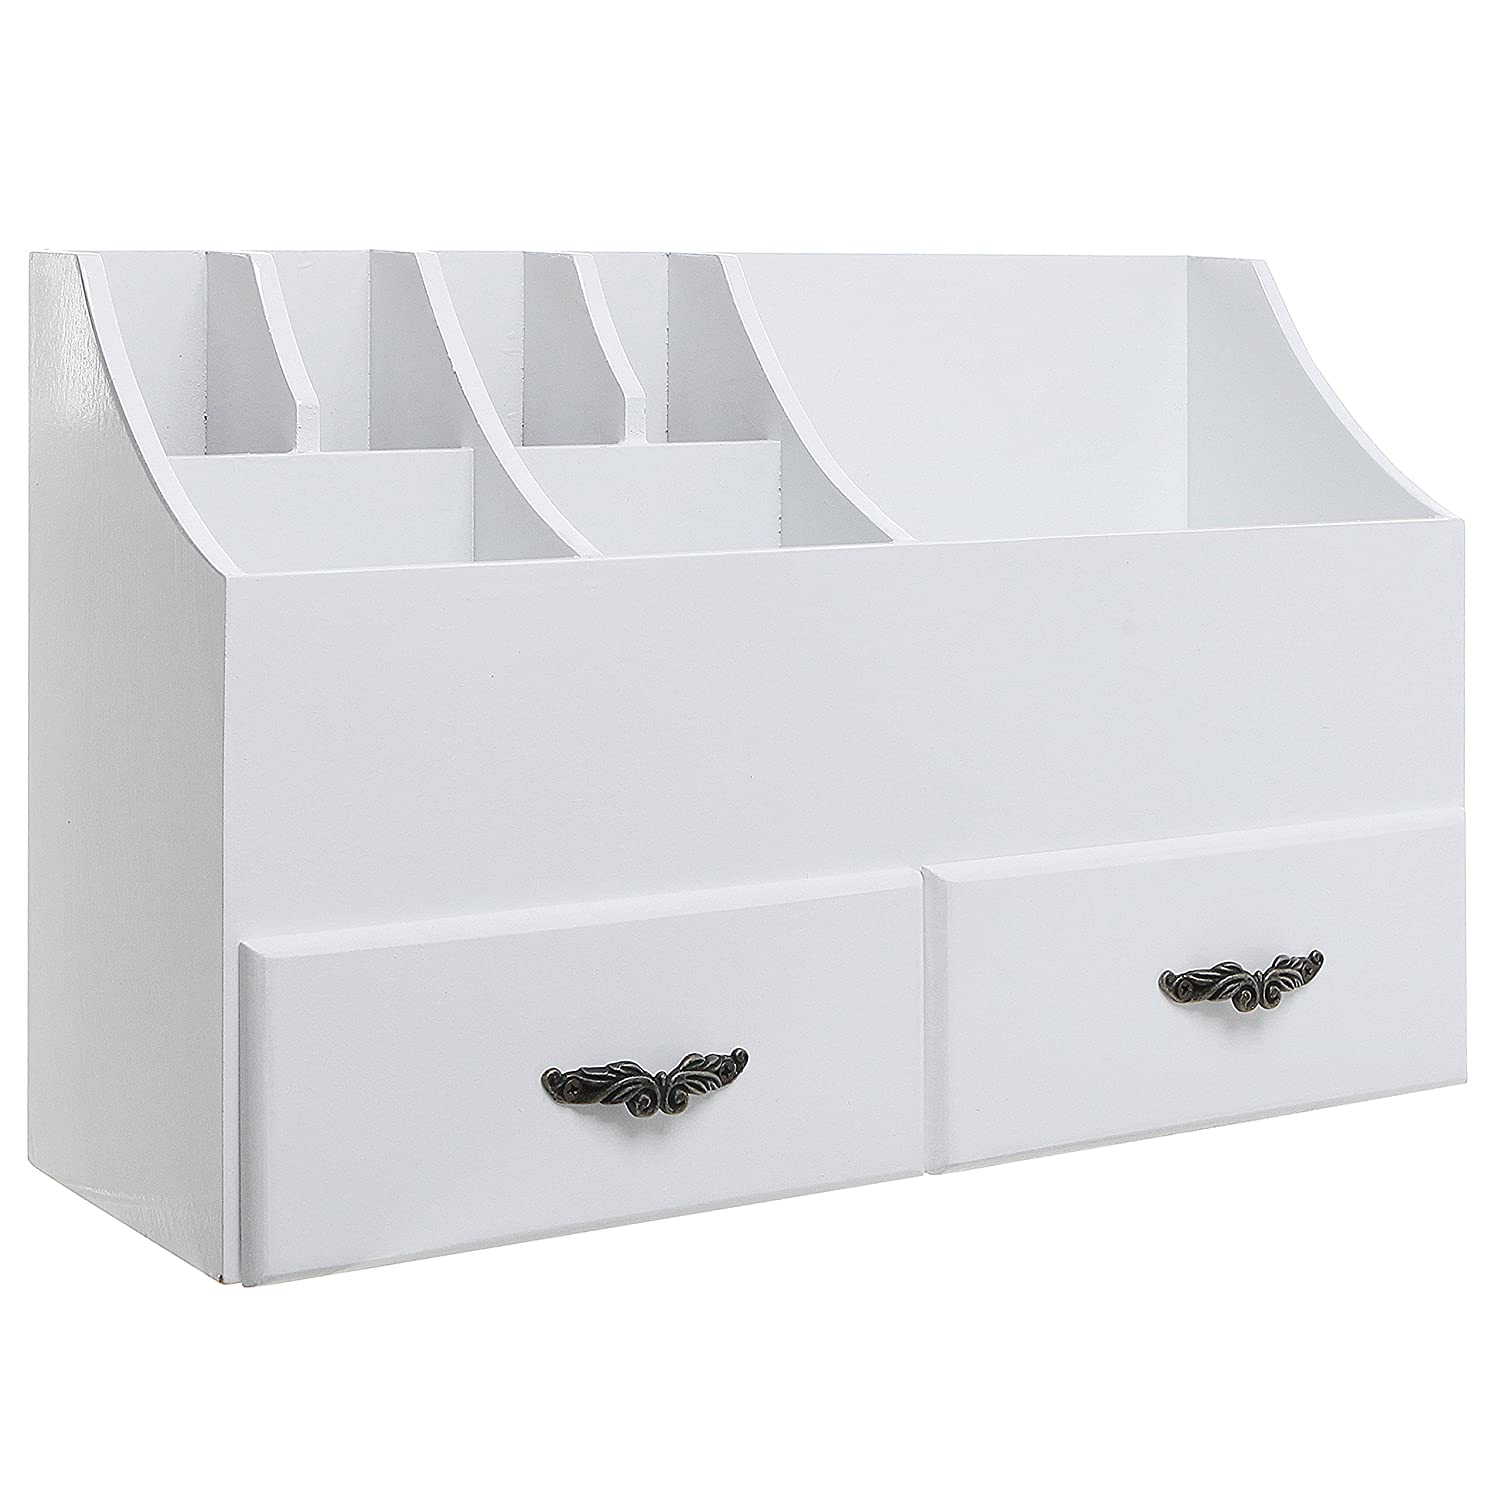 MyGift Shabby Chic White Wood Cosmetics Organizer/Makeup & Beauty Accessories Storage Rack w/Drawers